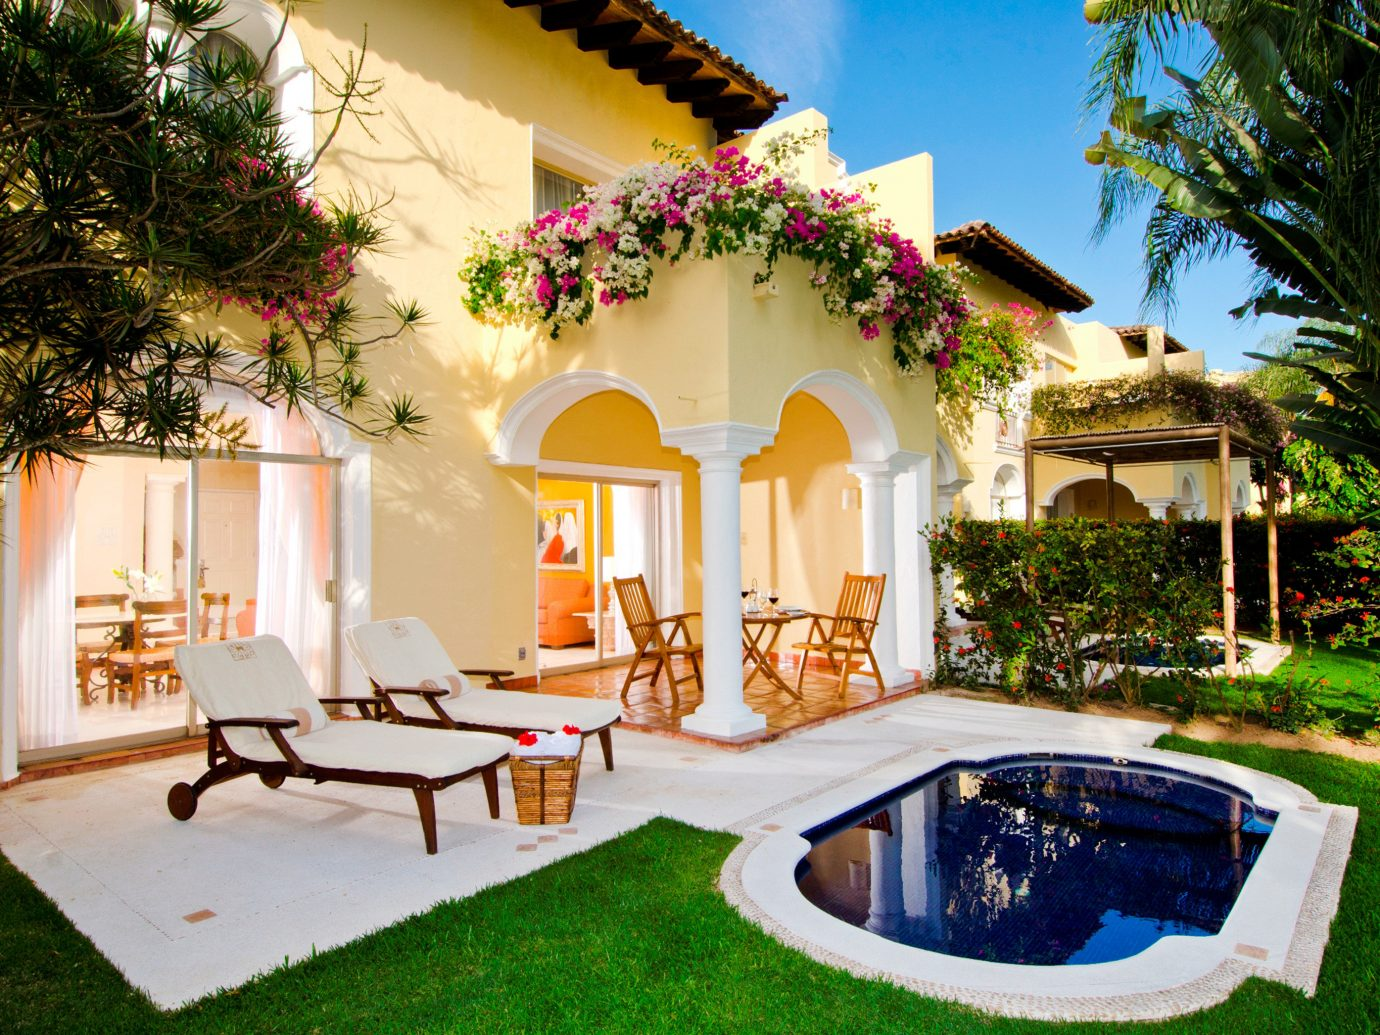 All-Inclusive Resorts Elegant Hotels Living Lounge Luxury Modern Pool tree grass outdoor house property estate home Villa swimming pool mansion vacation backyard hacienda Resort Courtyard cottage outdoor structure furniture